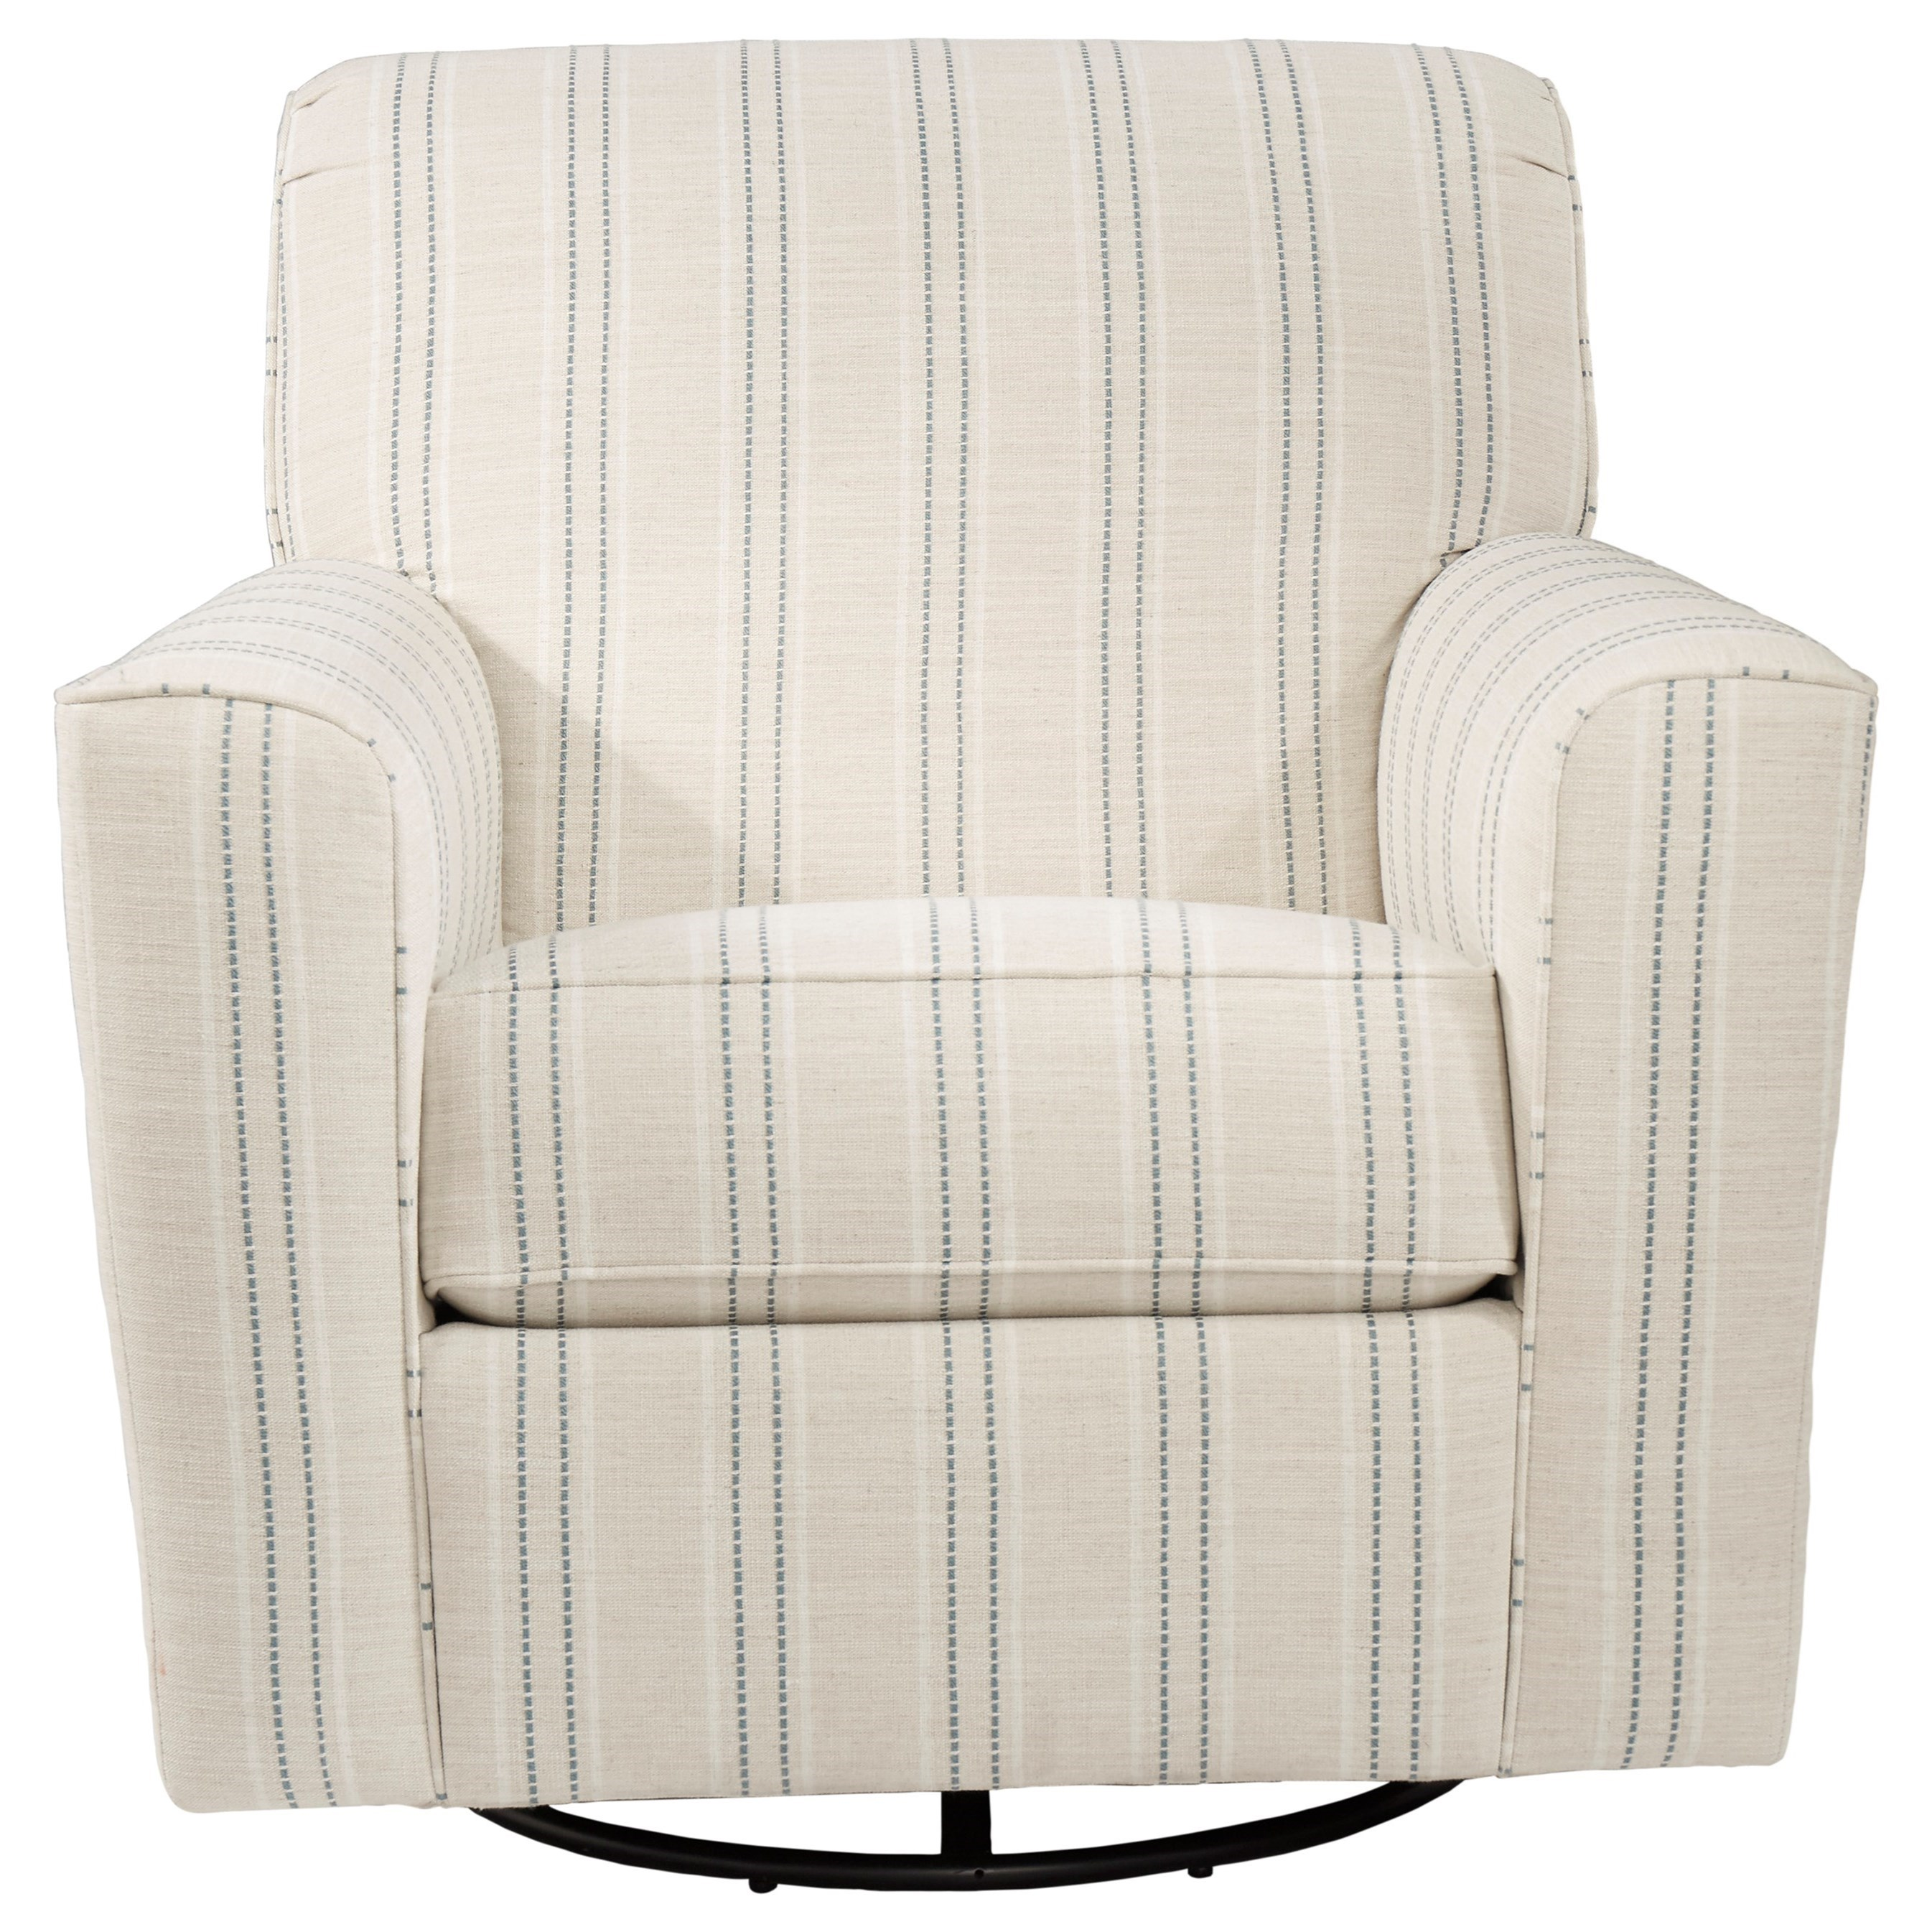 Alandari Swivel Glider Accent Chair by Signature Design by Ashley at Rife's Home Furniture